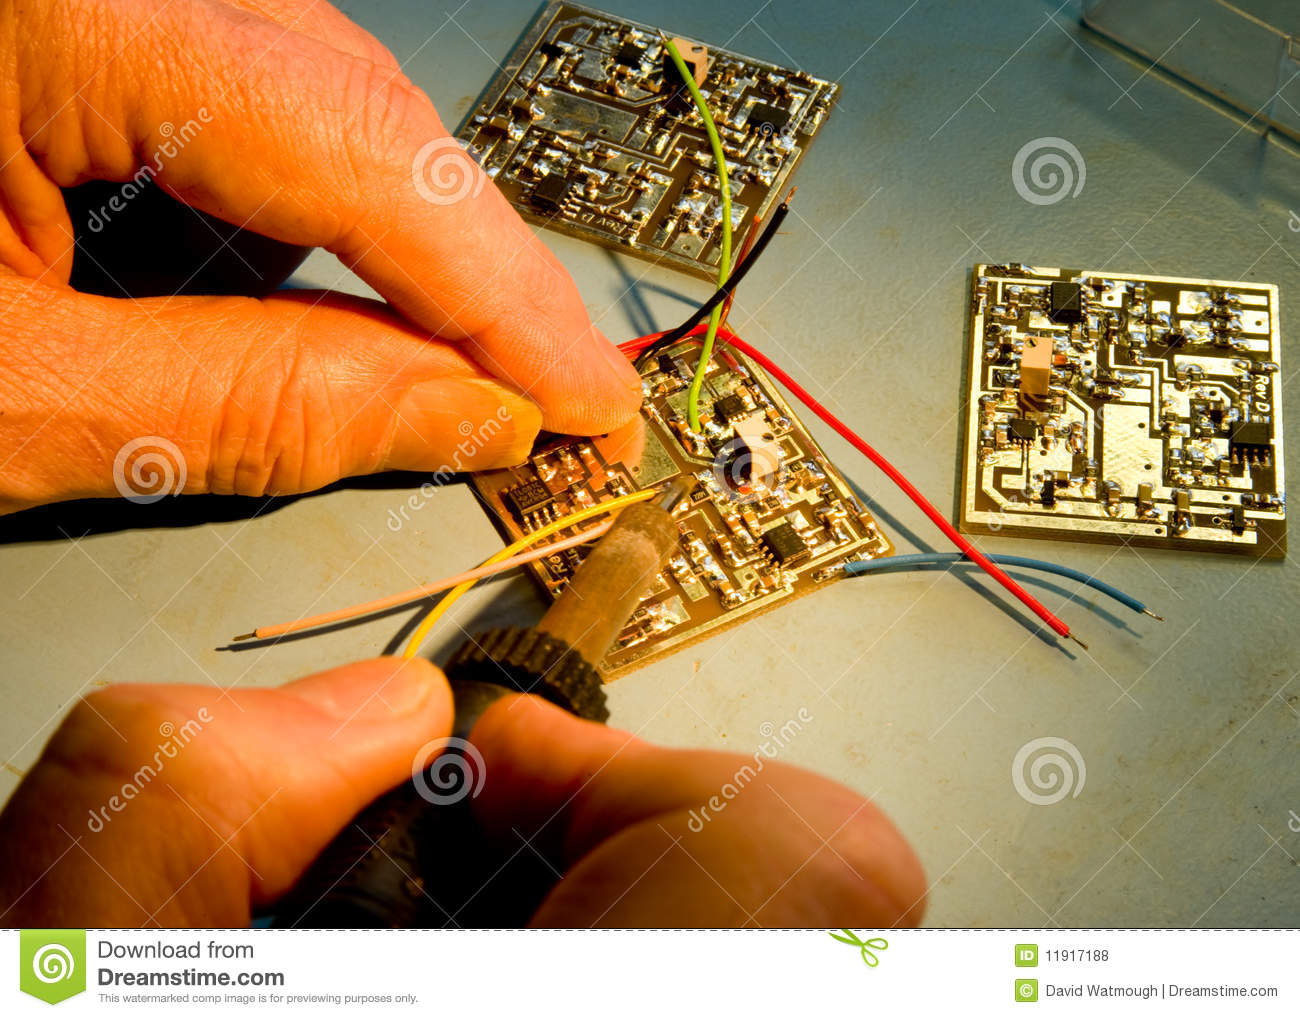 Engineer Soldering Wires To A Circuit Board Stock Photo Image Of Repair Used In Pc Computer Royalty Free Clip